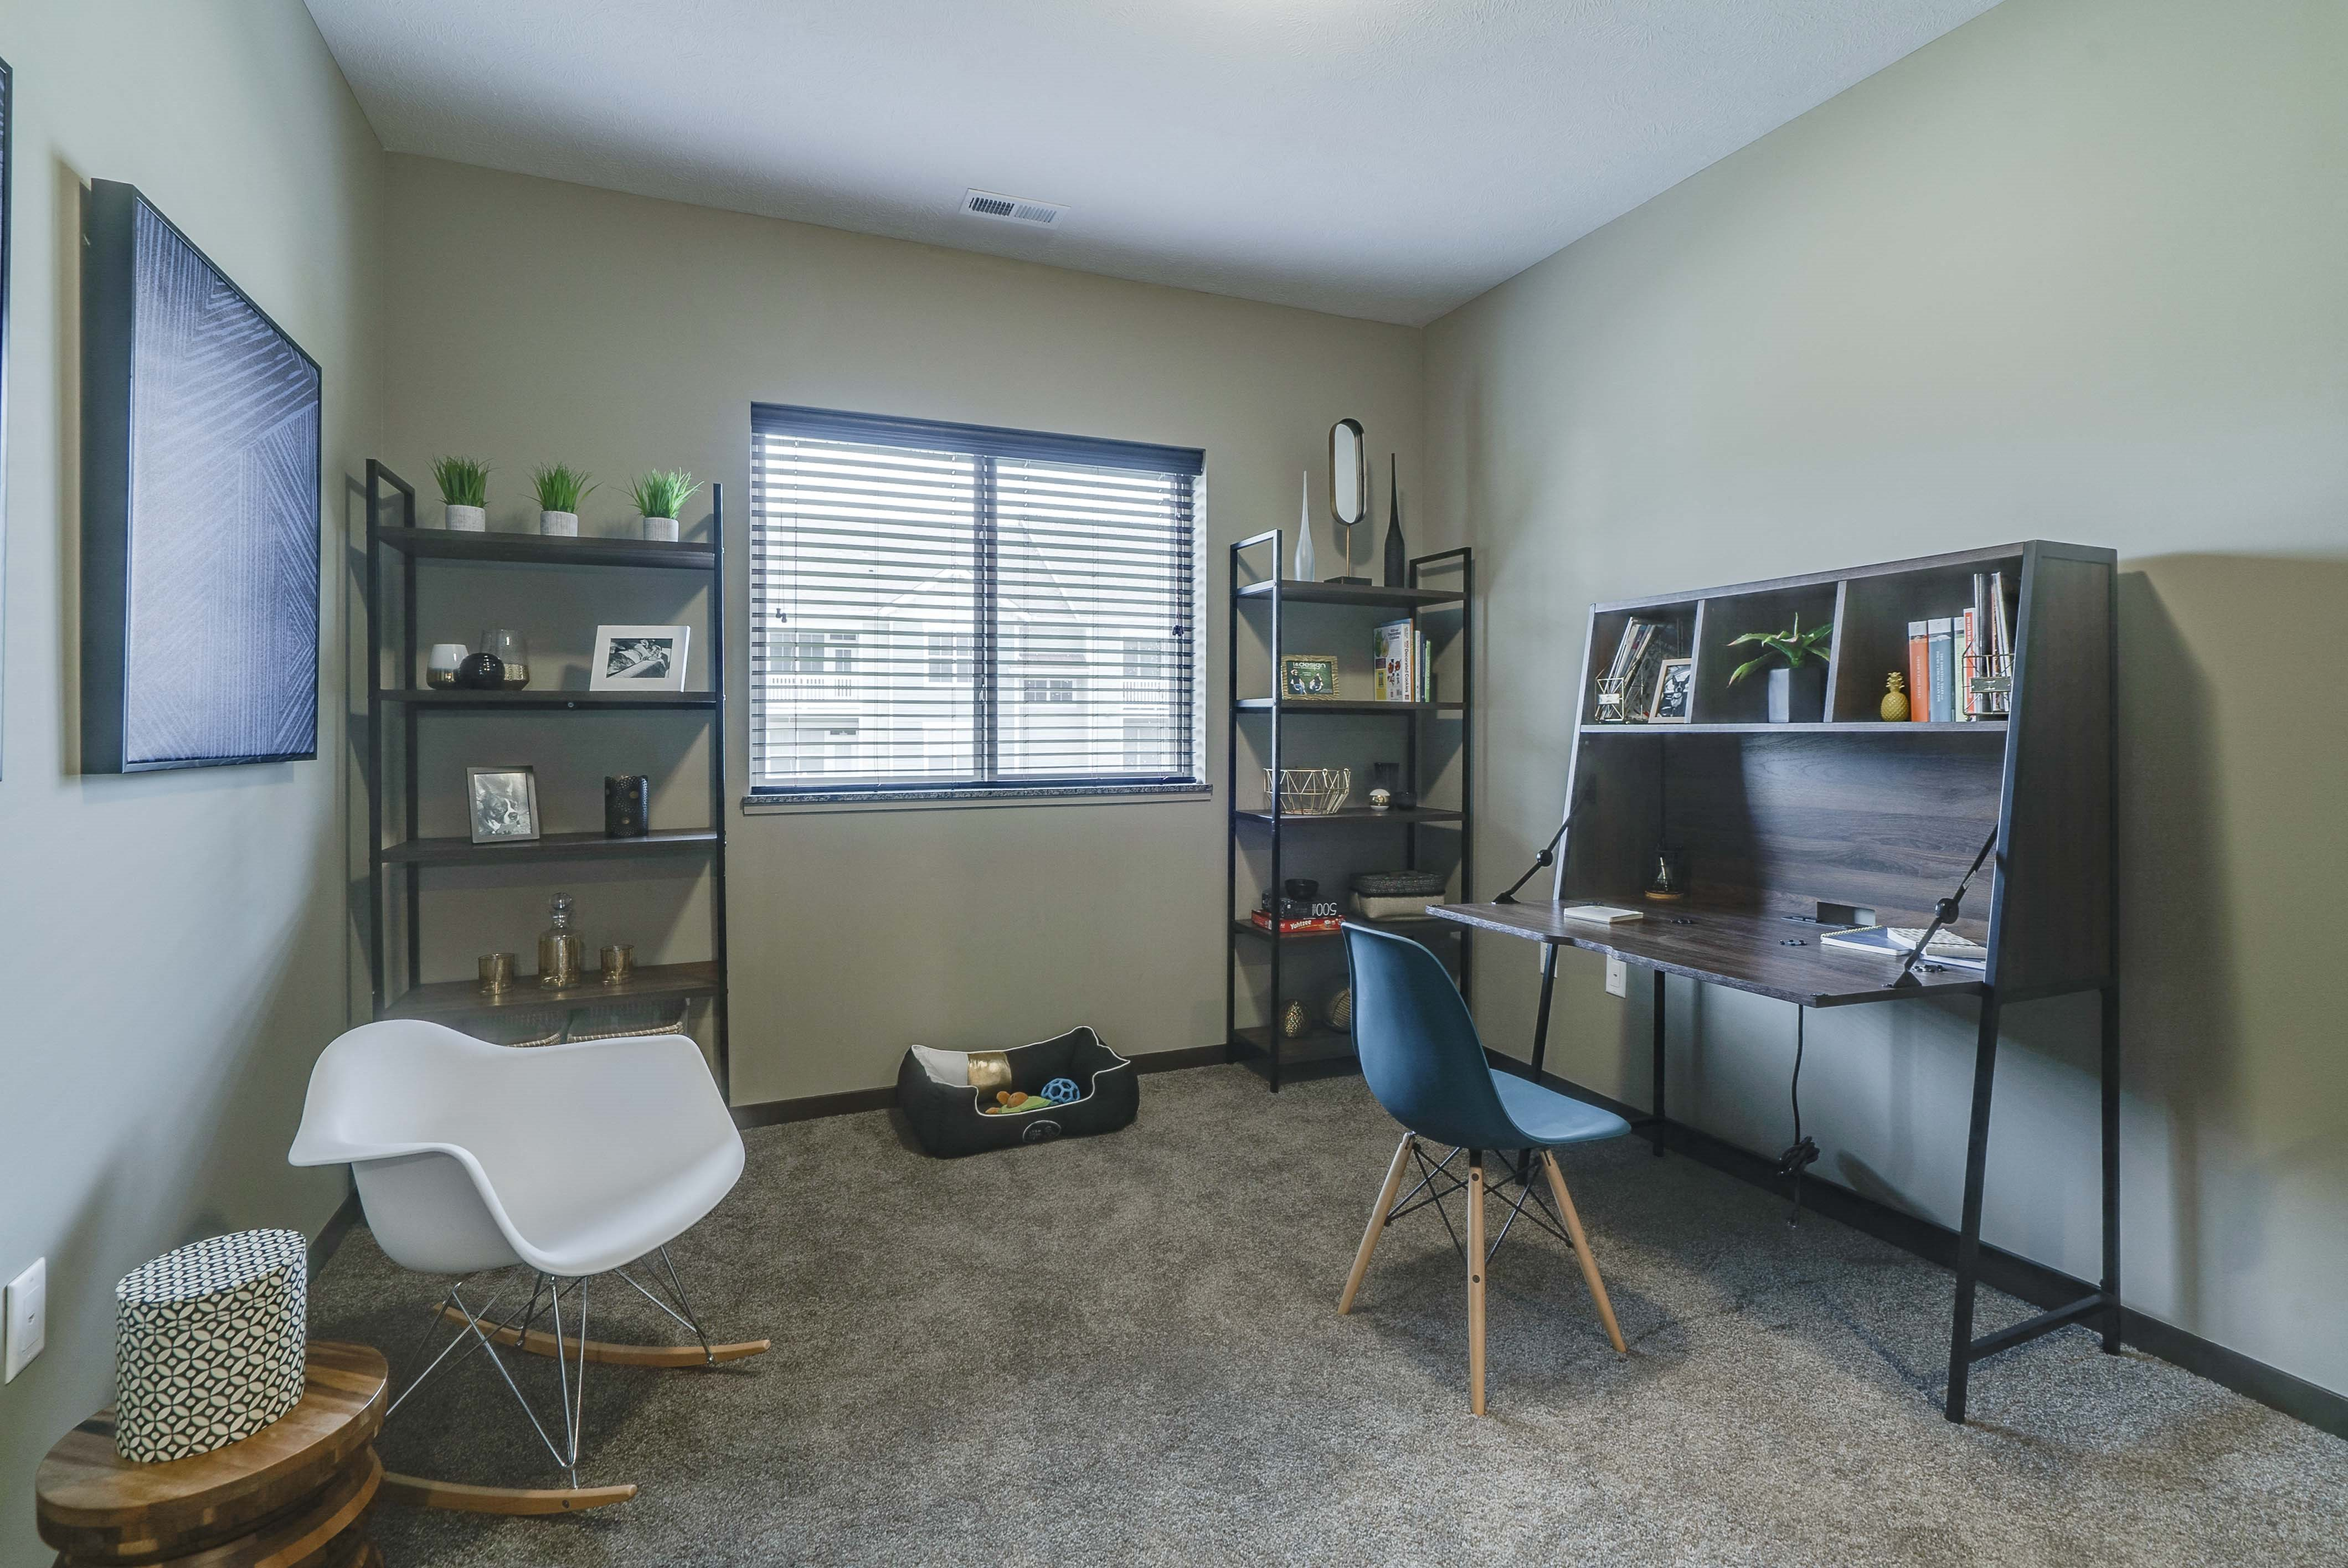 Spacious two bedroom at WH Flats new luxury apartments in south Lincoln NE 68516